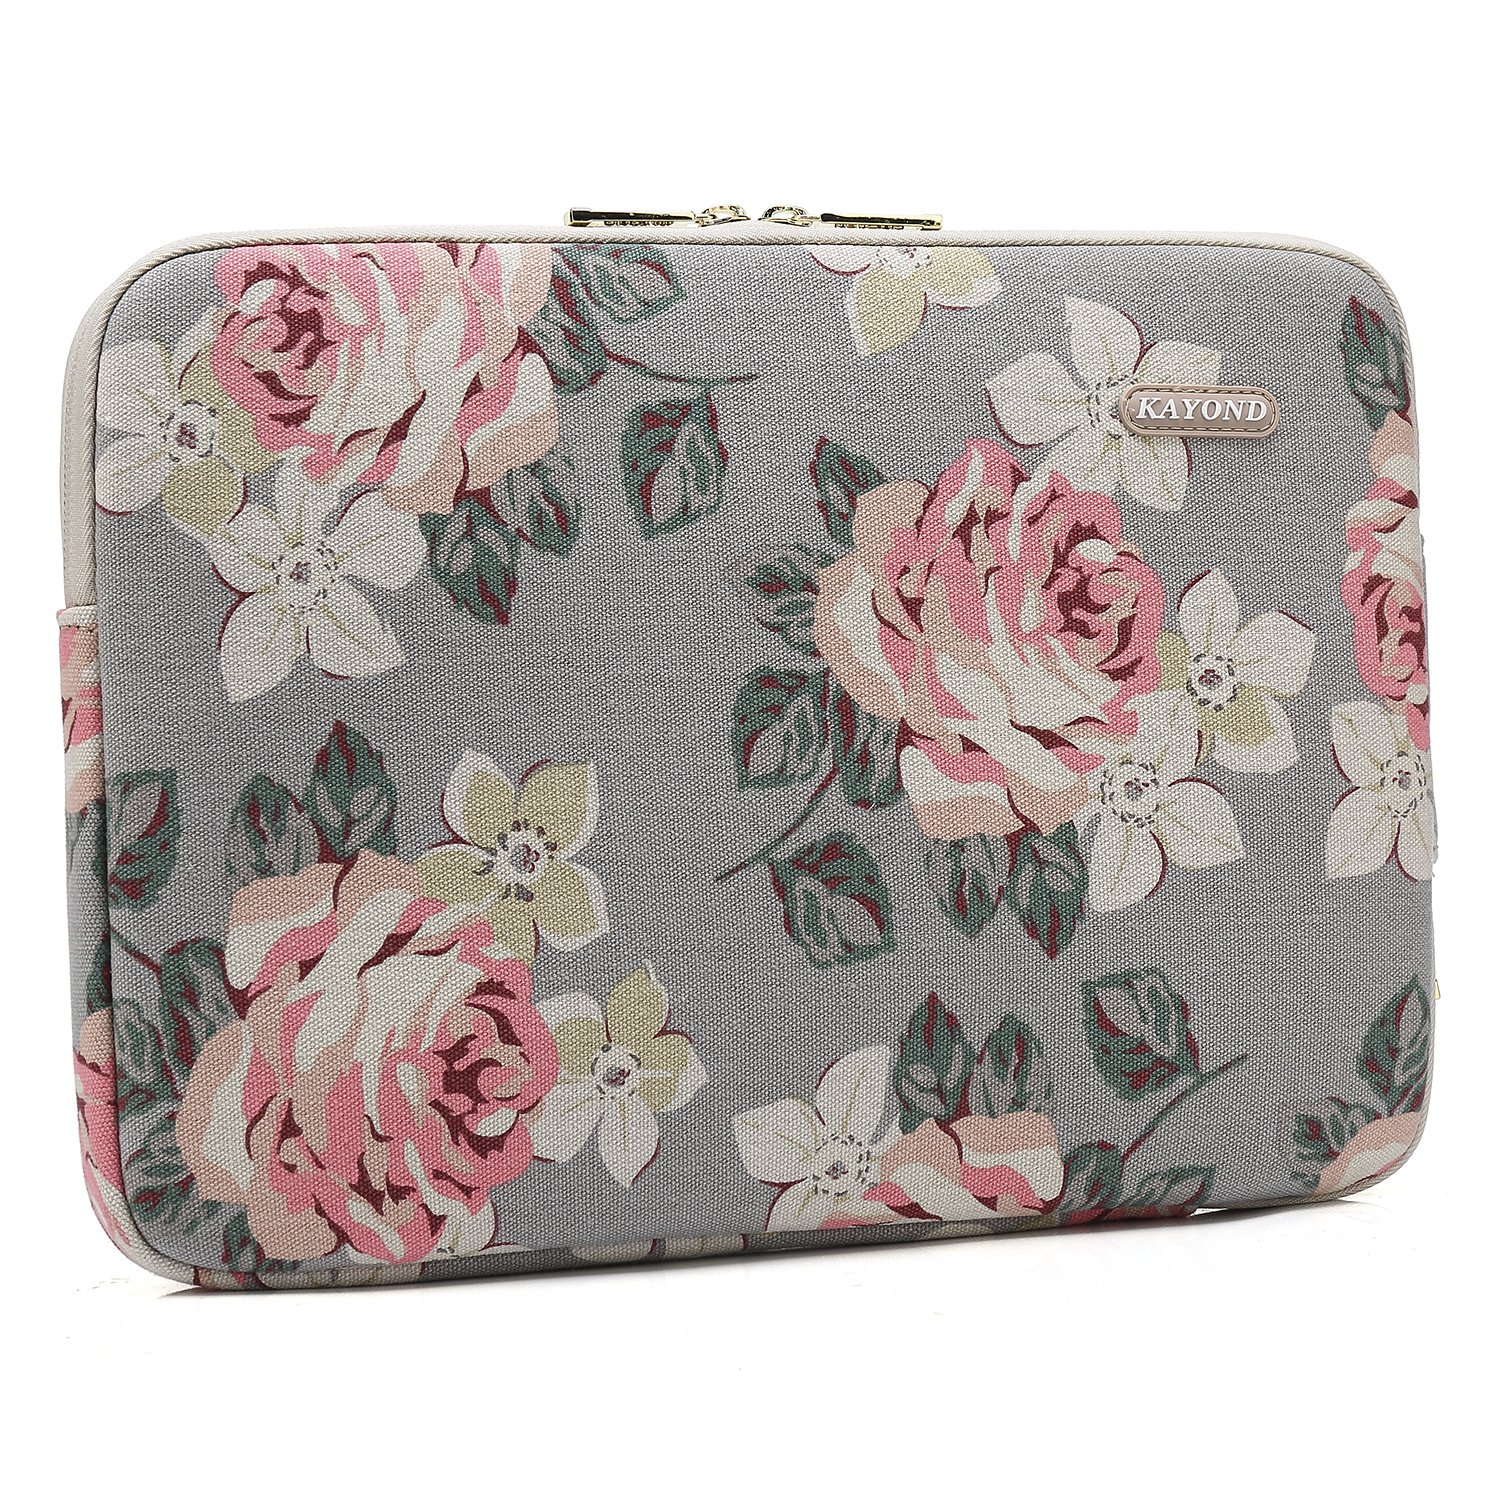 13-13.3 Inch, Gray Rose KAYOND Gray Rose Pattern Water-resistant 12.5 inch 13 inch Canvas laptop sleeve with pocket for 13.3 inch laptop case macbook air pro 13 sleeve ipad 12.9